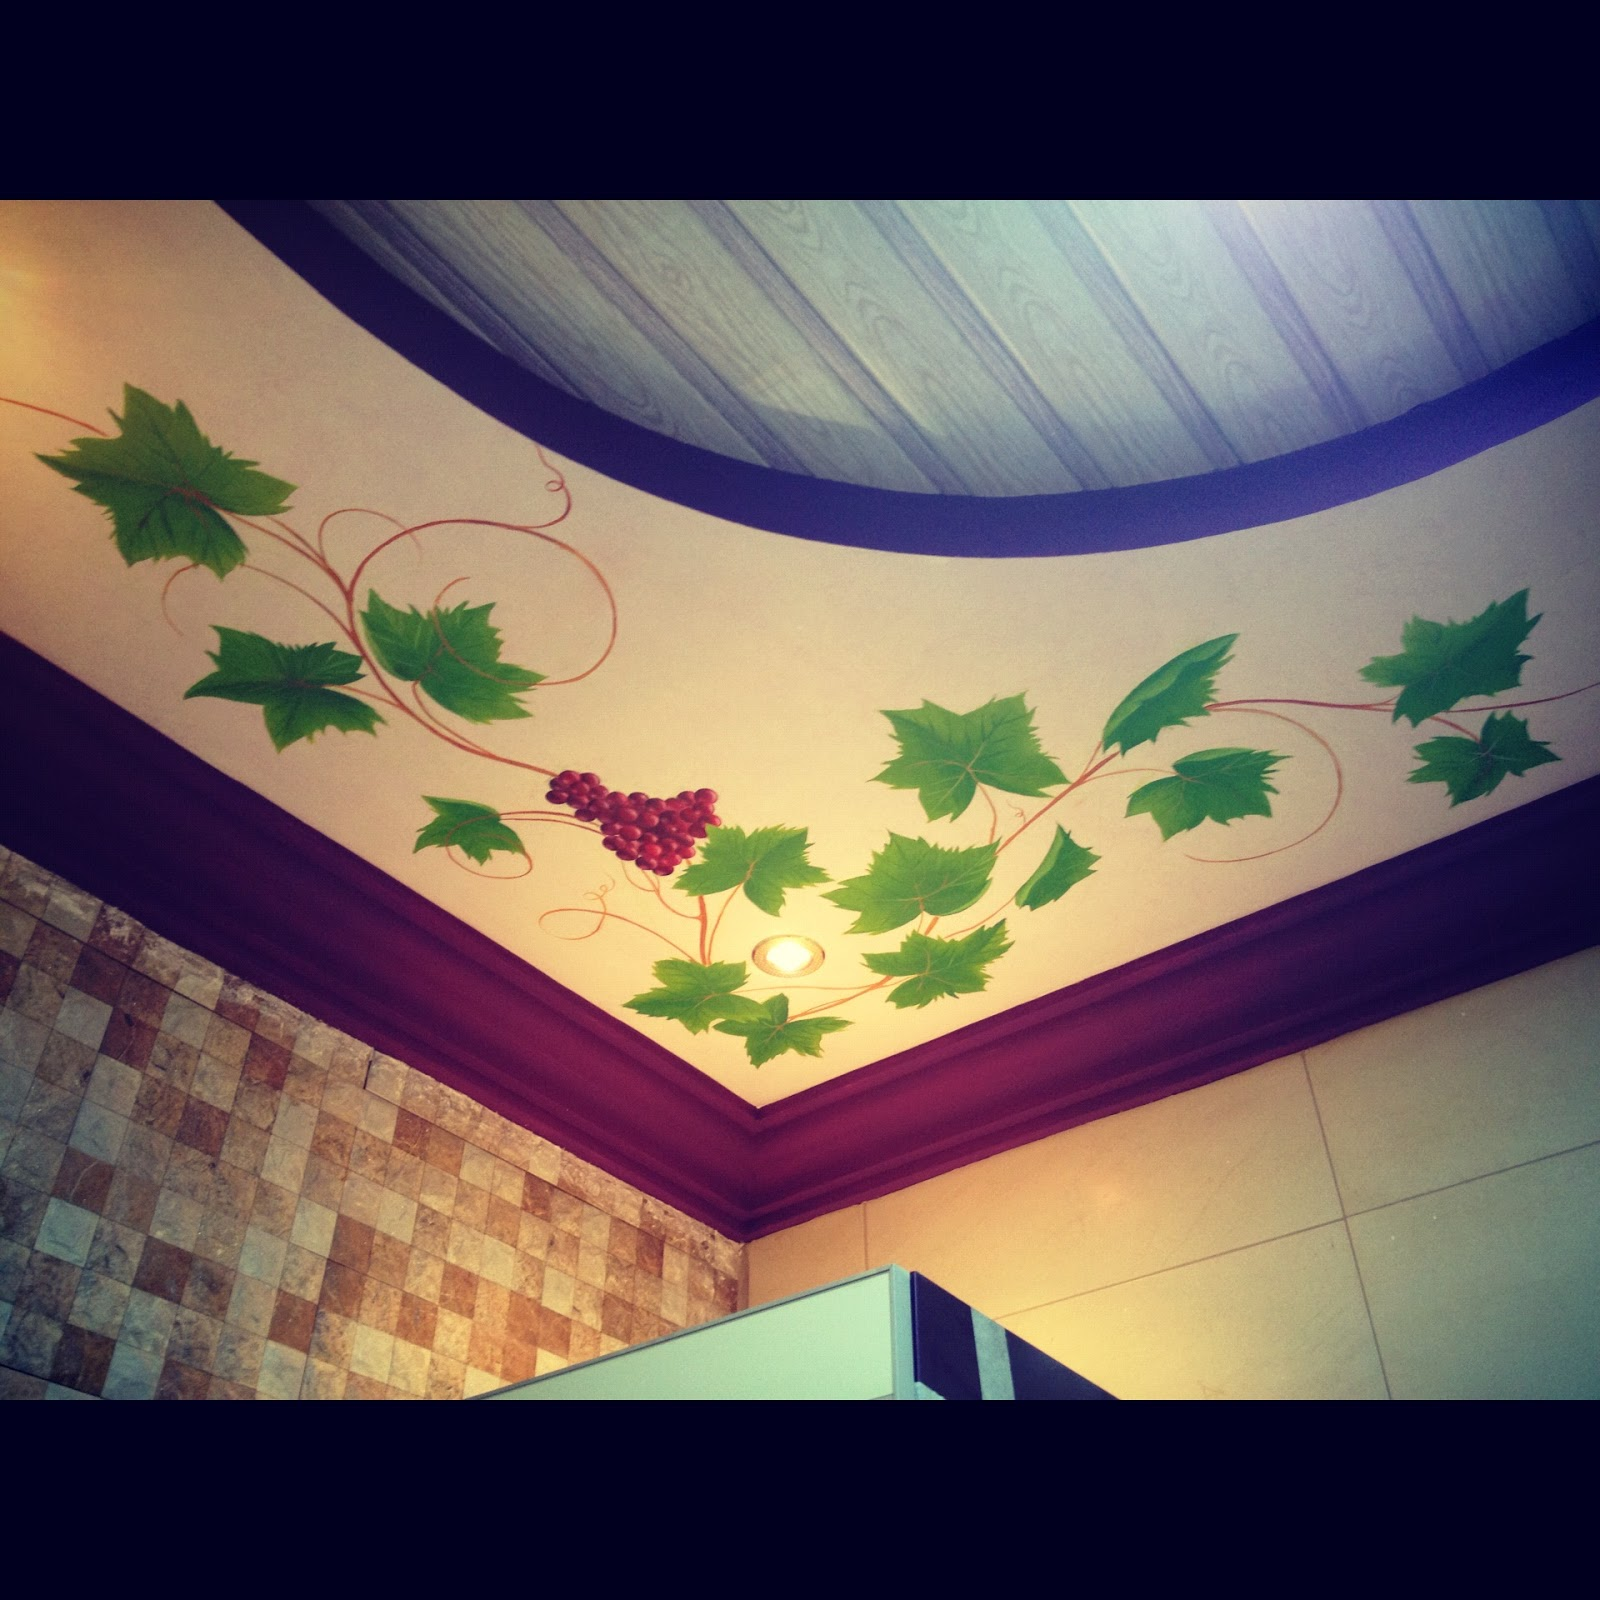 Wall design ideas grapes painting on ceiling for Painting on ceiling